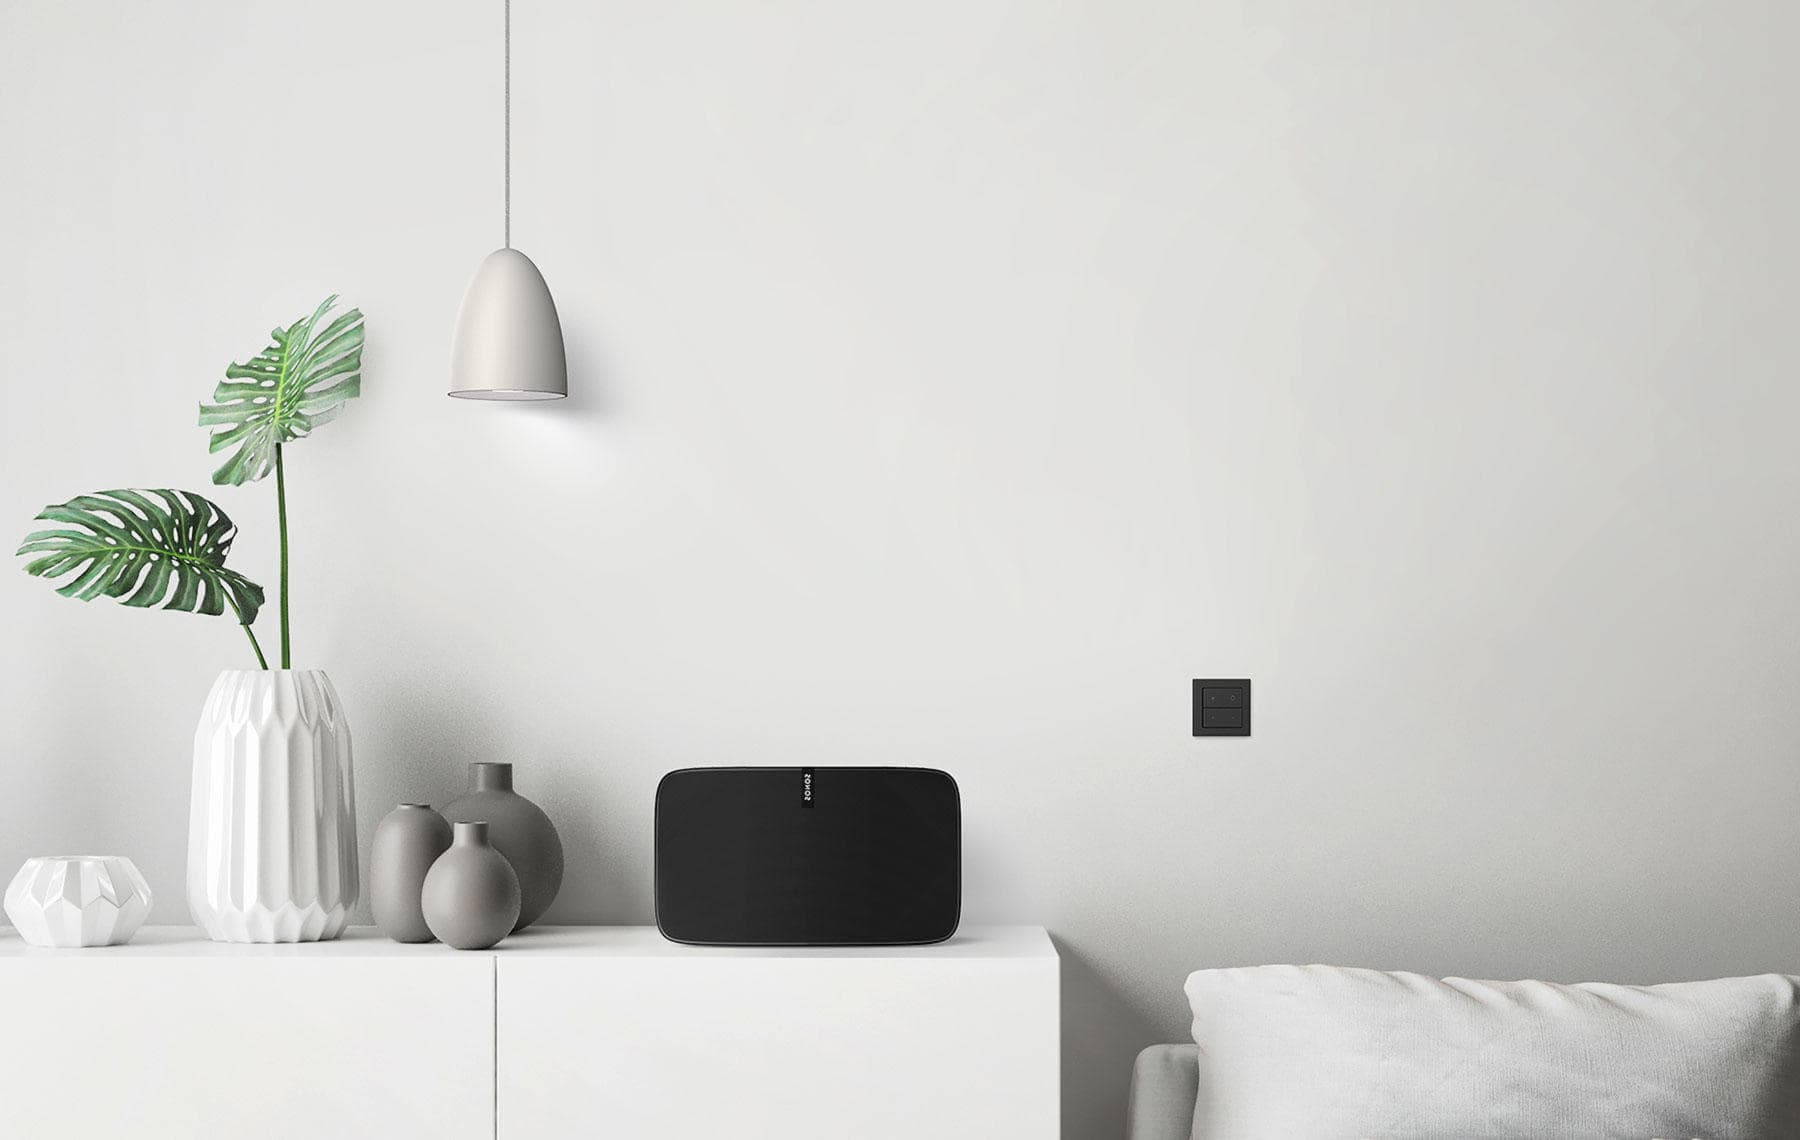 Nuimo Click Schwarz fixed on a Weiß wall in a sophisticated living room next to a Sonos speaker and stylish furniture